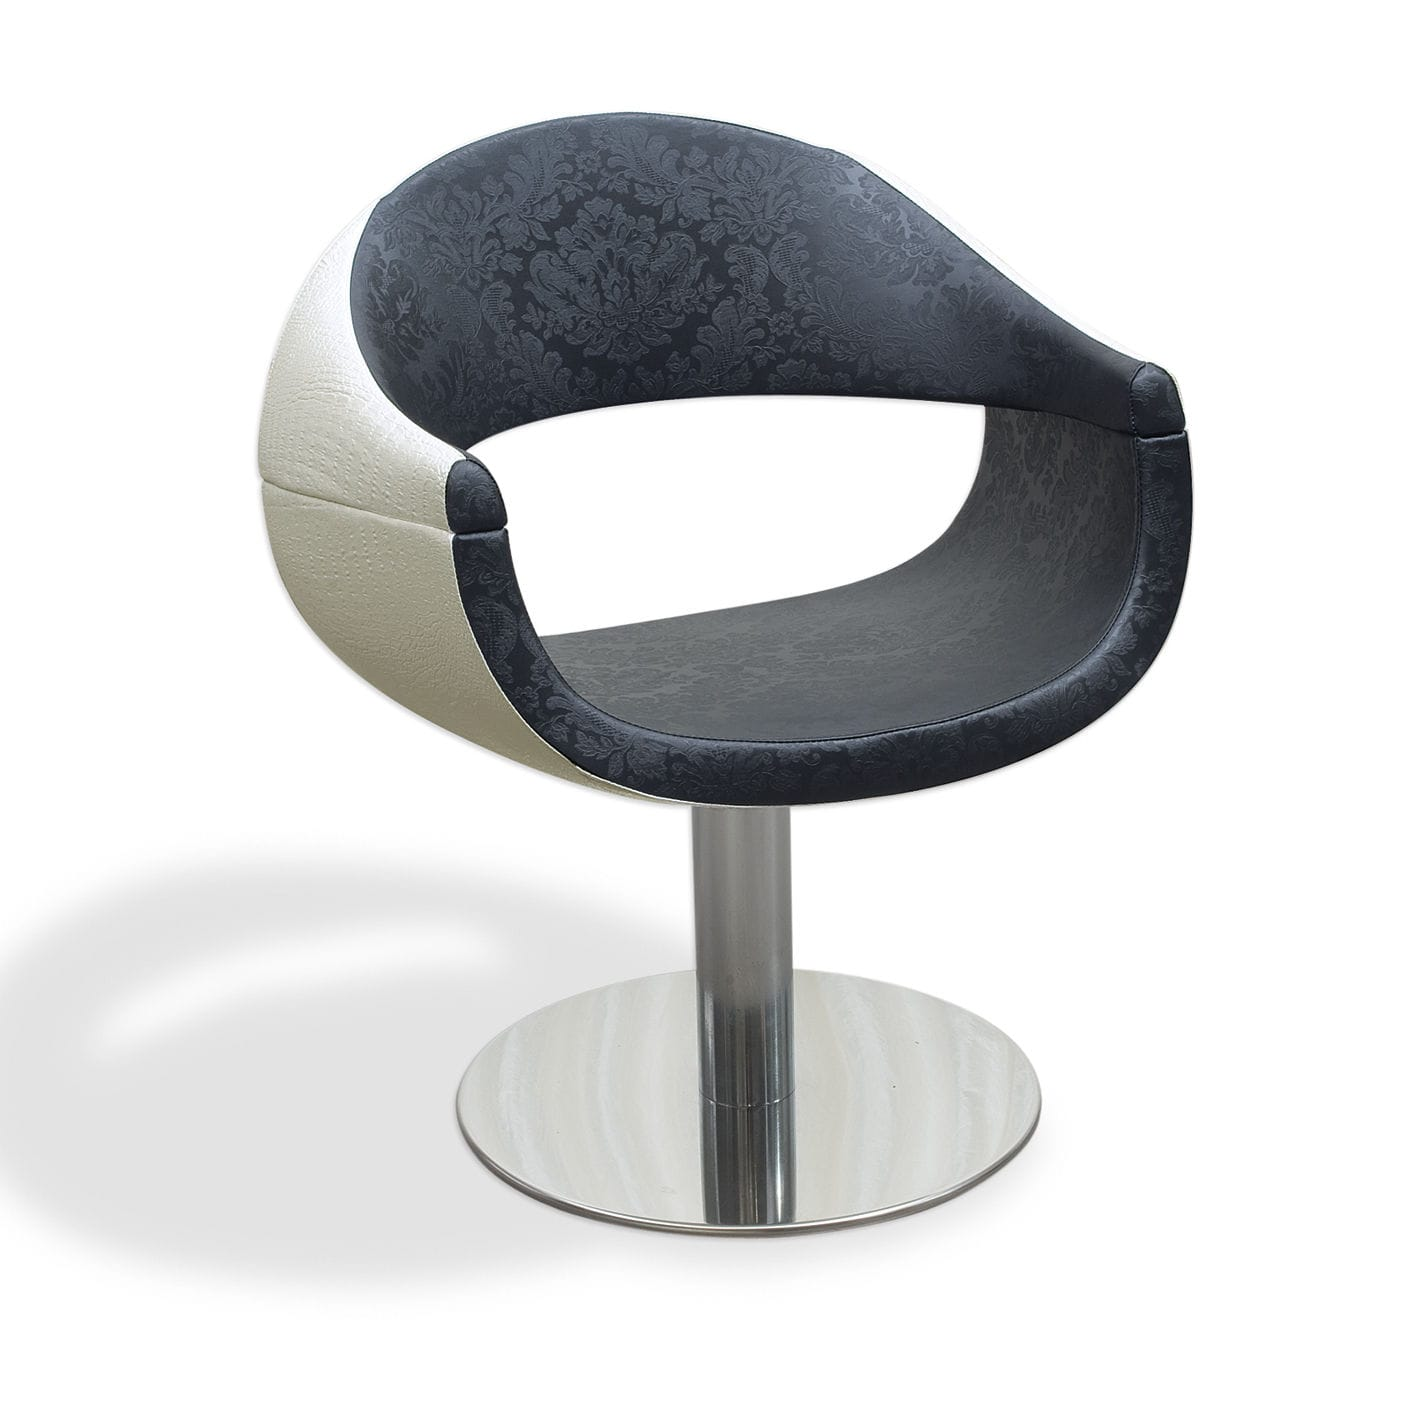 synthetic leather beauty salon chair central base vezzosi style